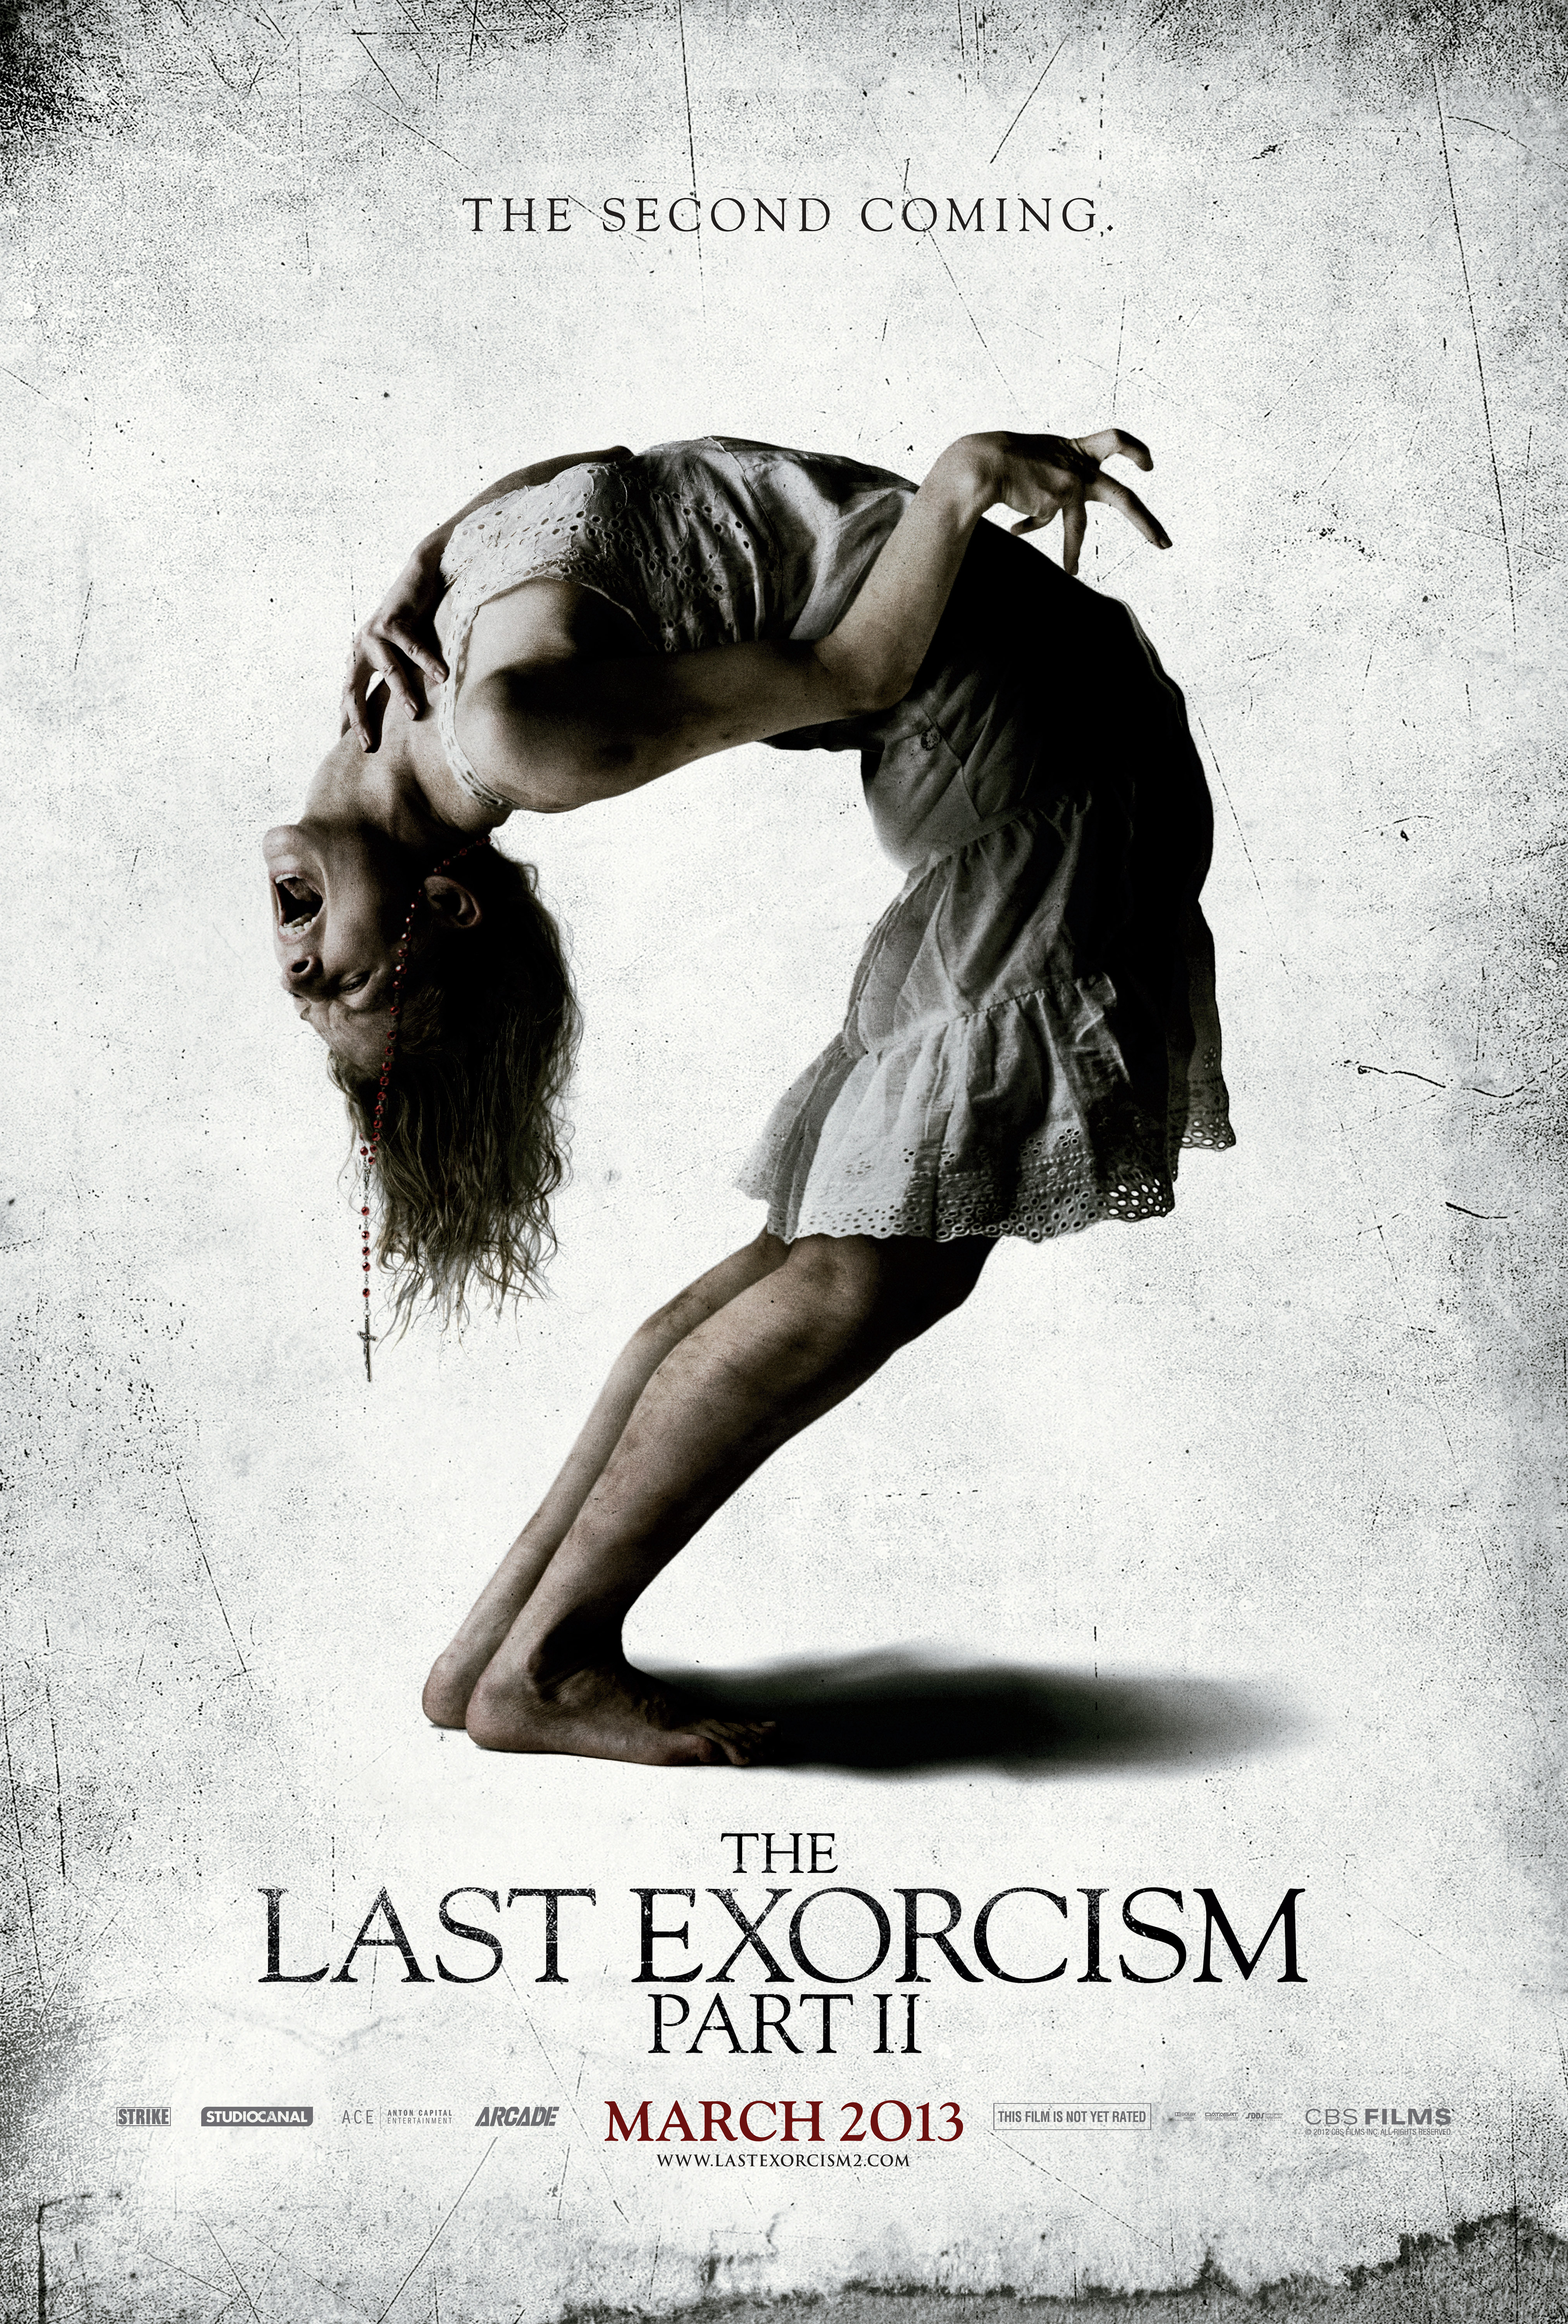 The Last Exorcism 2 movie